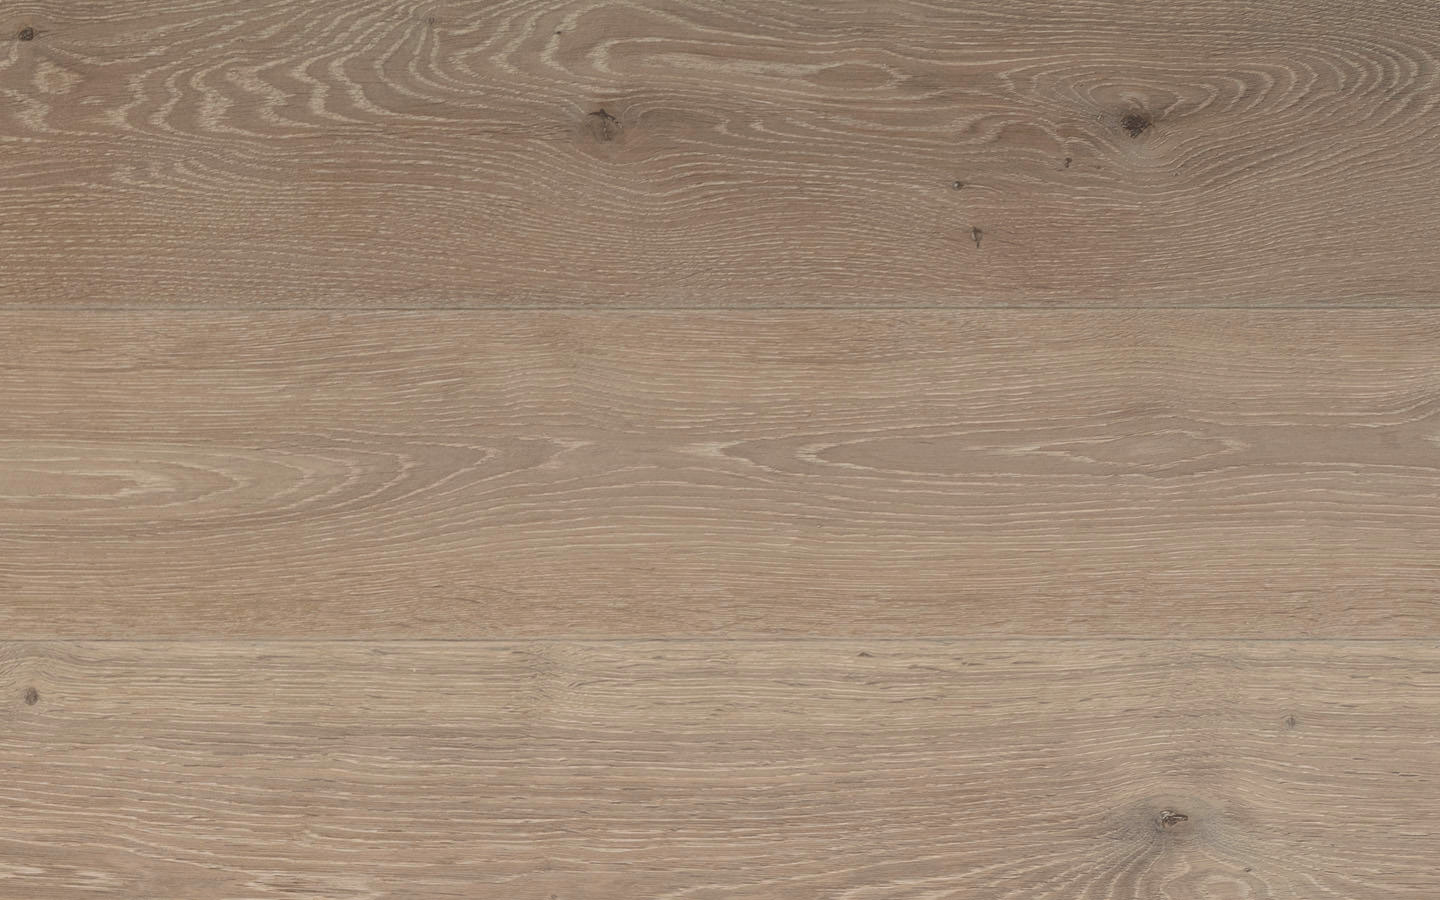 Château by adler - Oak Nizza standard wire brushed color oiled - 19 x 180-350 x 1800-5000 mm